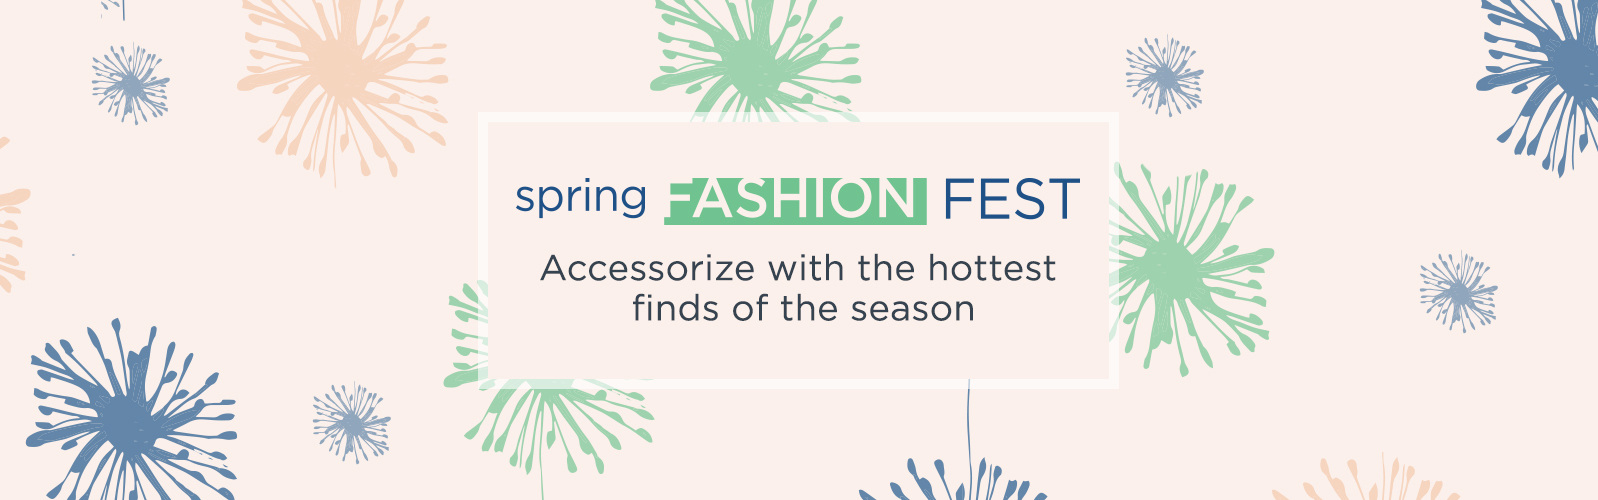 Spring Fashion Fest. Accessorize with the hottest finds of the season